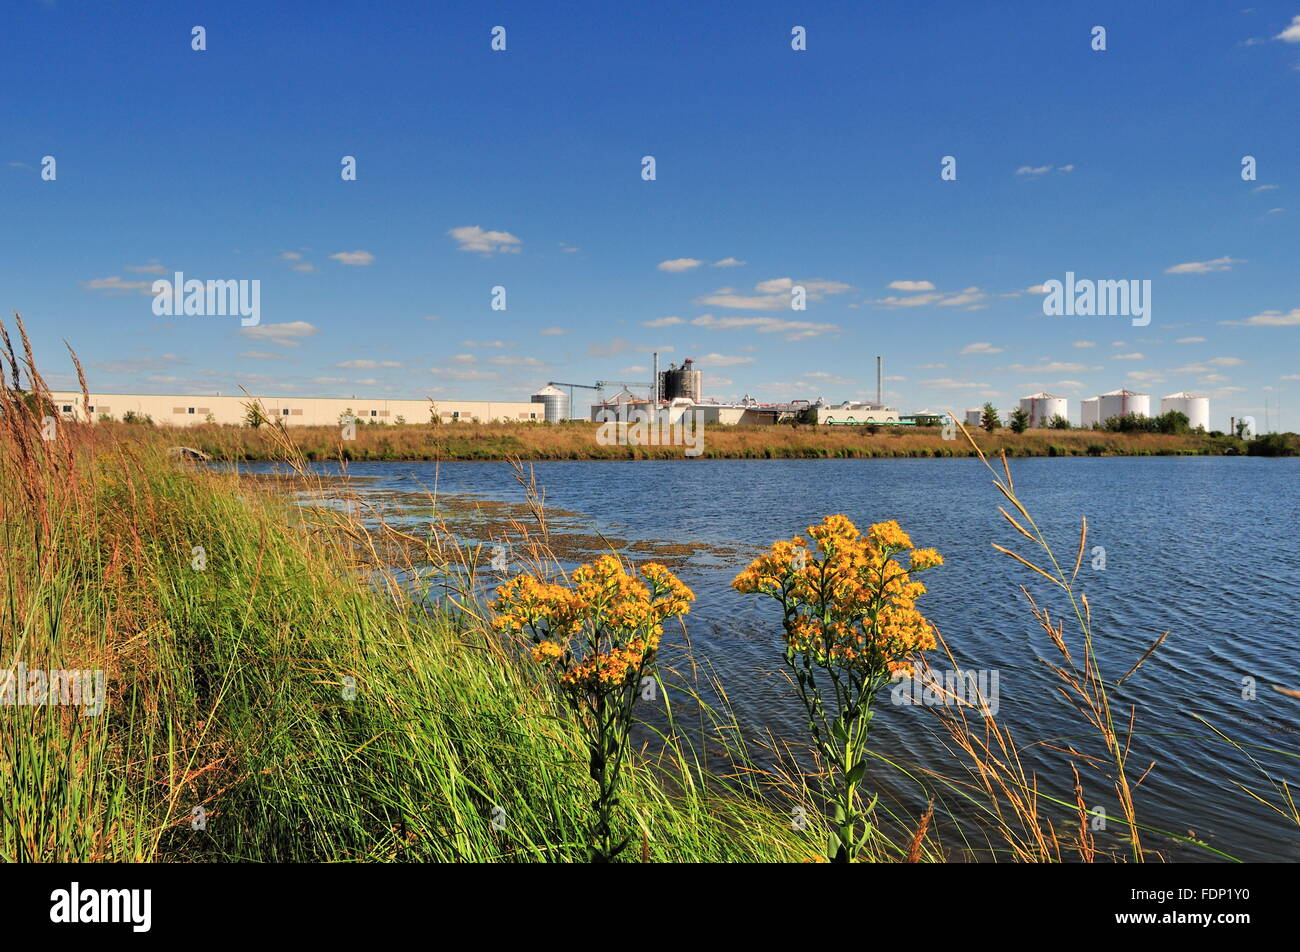 Prologis Park, an industrial park made up of warehouses, utility facilities and food processing plants in Rochelle, - Stock Image